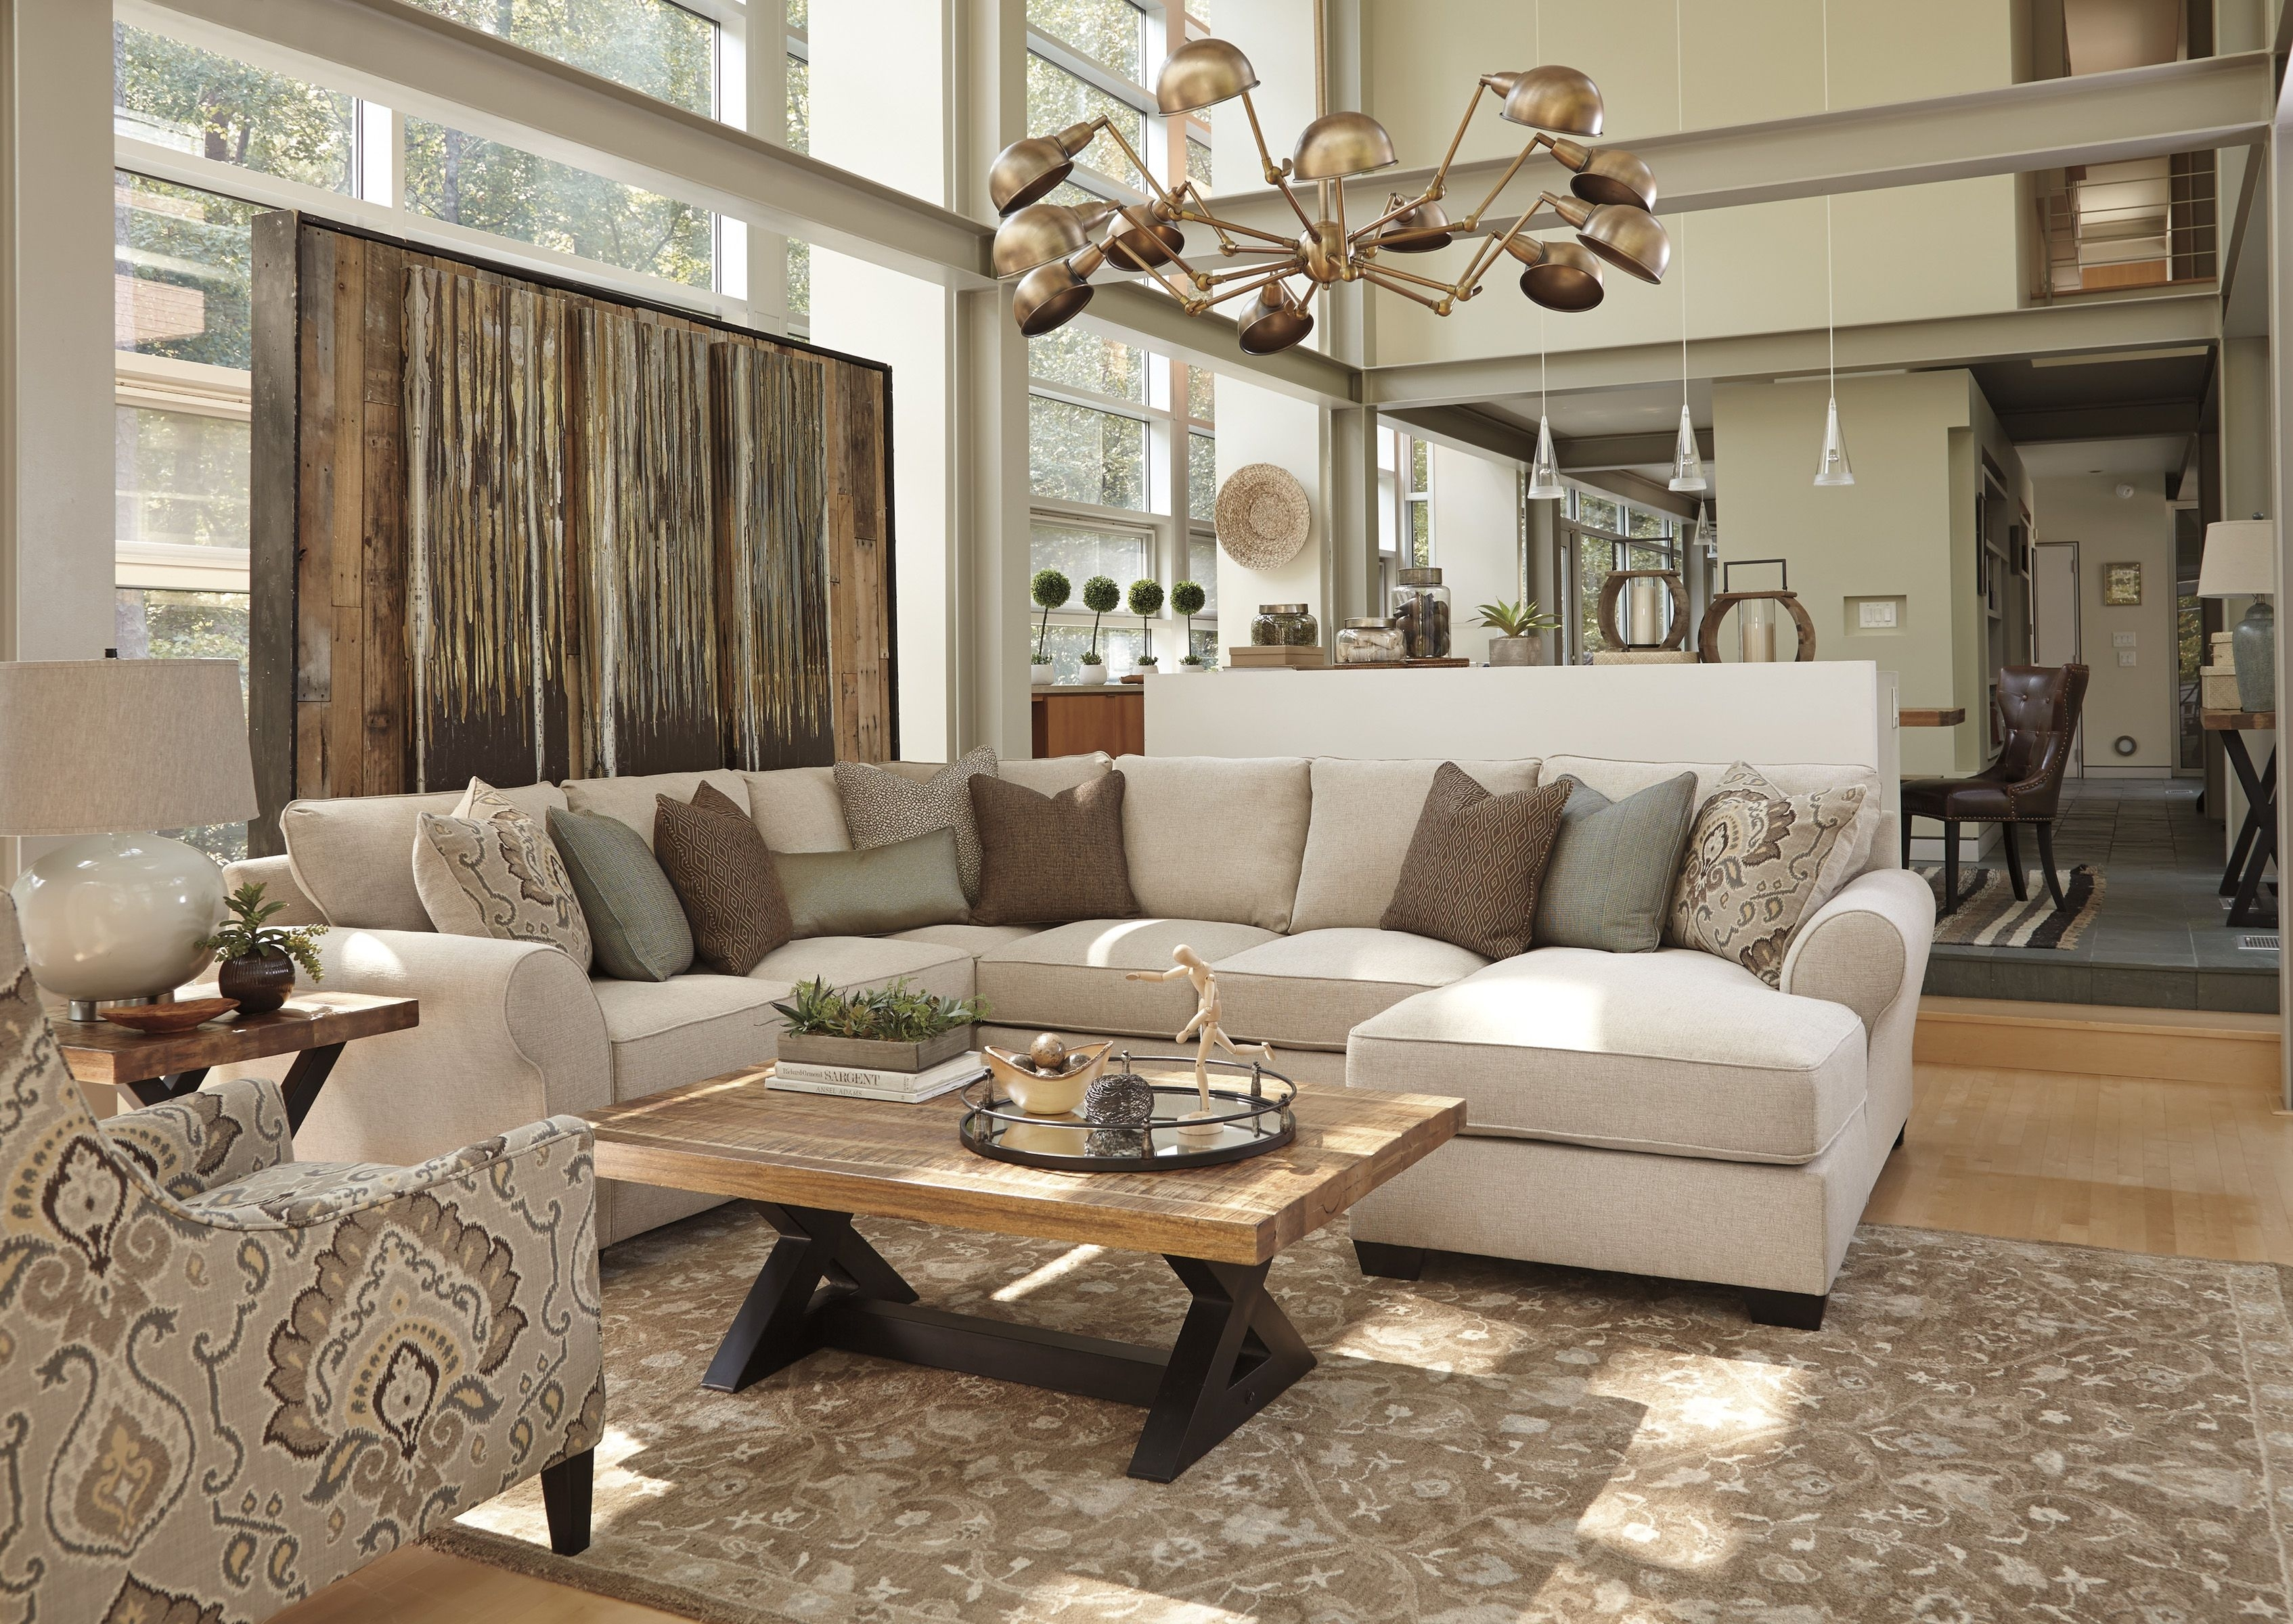 The Ashley Homestore Wilcot Sectional Is Perfect For Those Who Want inside 10X8 Sectional Sofas (Image 9 of 10)